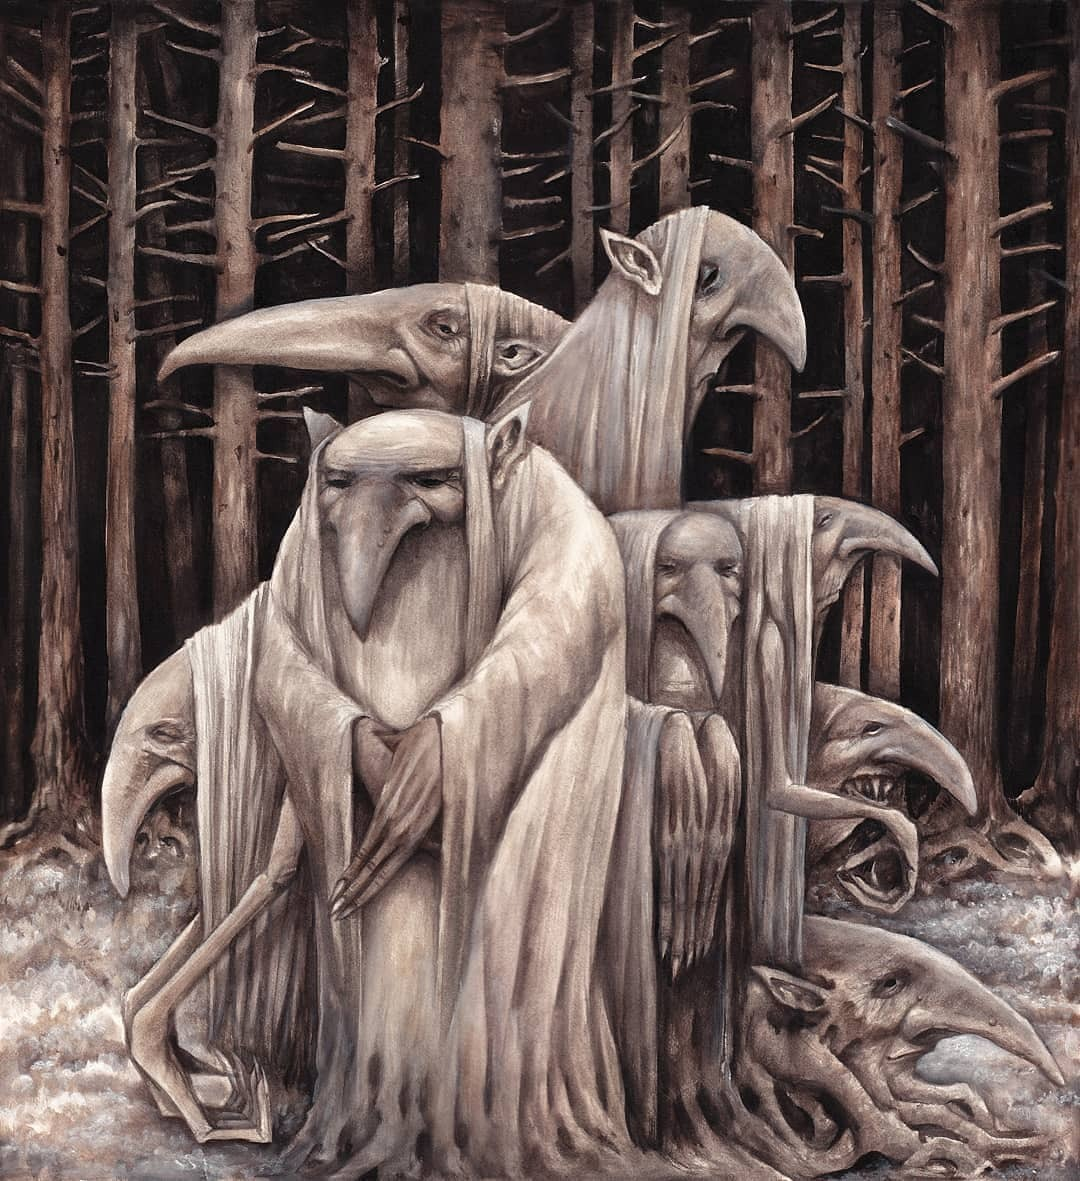 Marc Potts #fantasyart #elders #Fantastico #Dimensions #forests